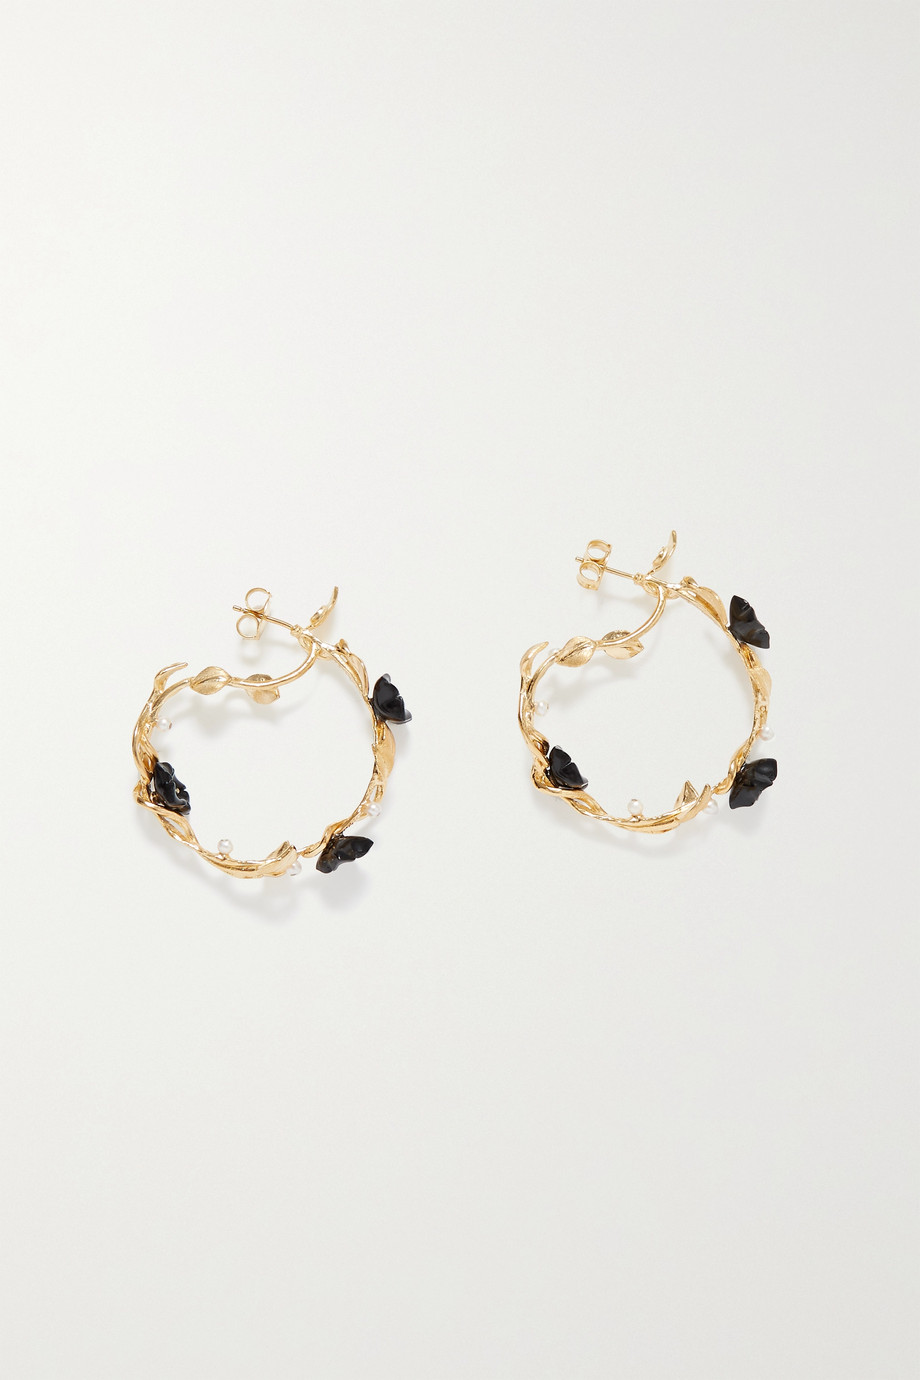 Of Rare Origin Mini Flower Whirl gold vermeil, onyx and pearl earrings